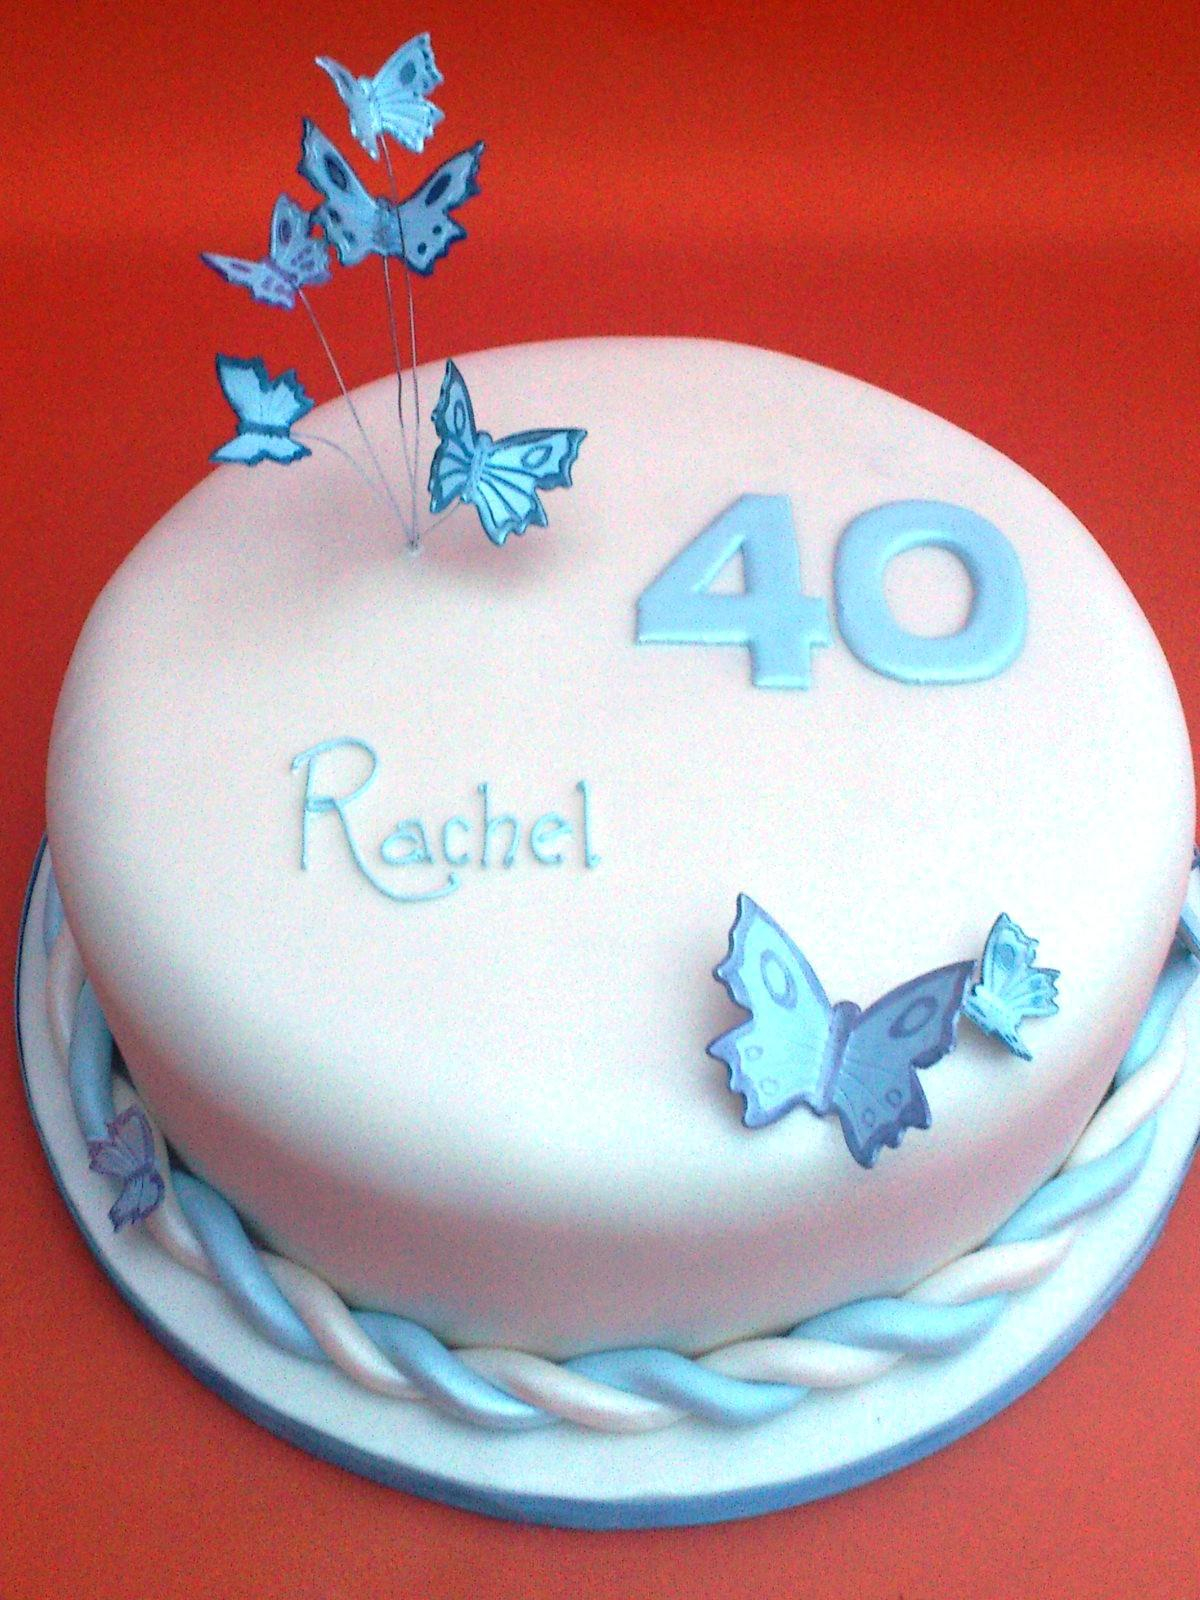 40Th Birthday Cakes For Her 40th Birthday Cake Ideas For Her Protoblogr Design 40th Birthday